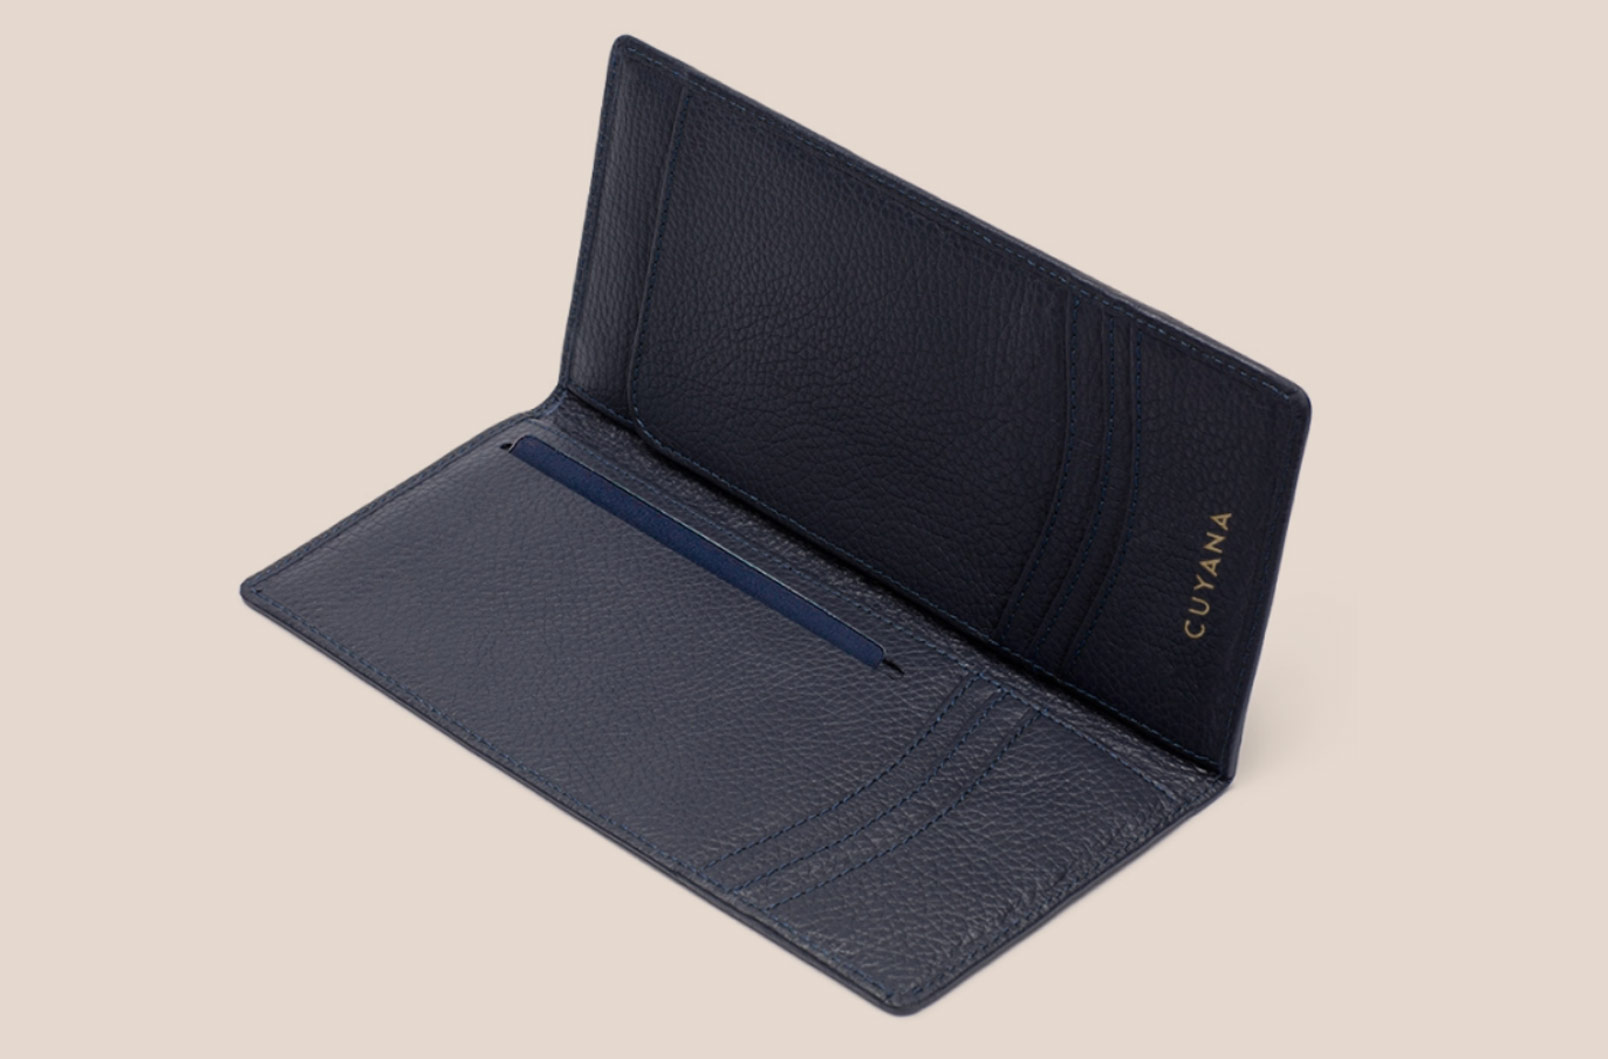 Cuyana Classic Passport Holder interior image with Card Slots